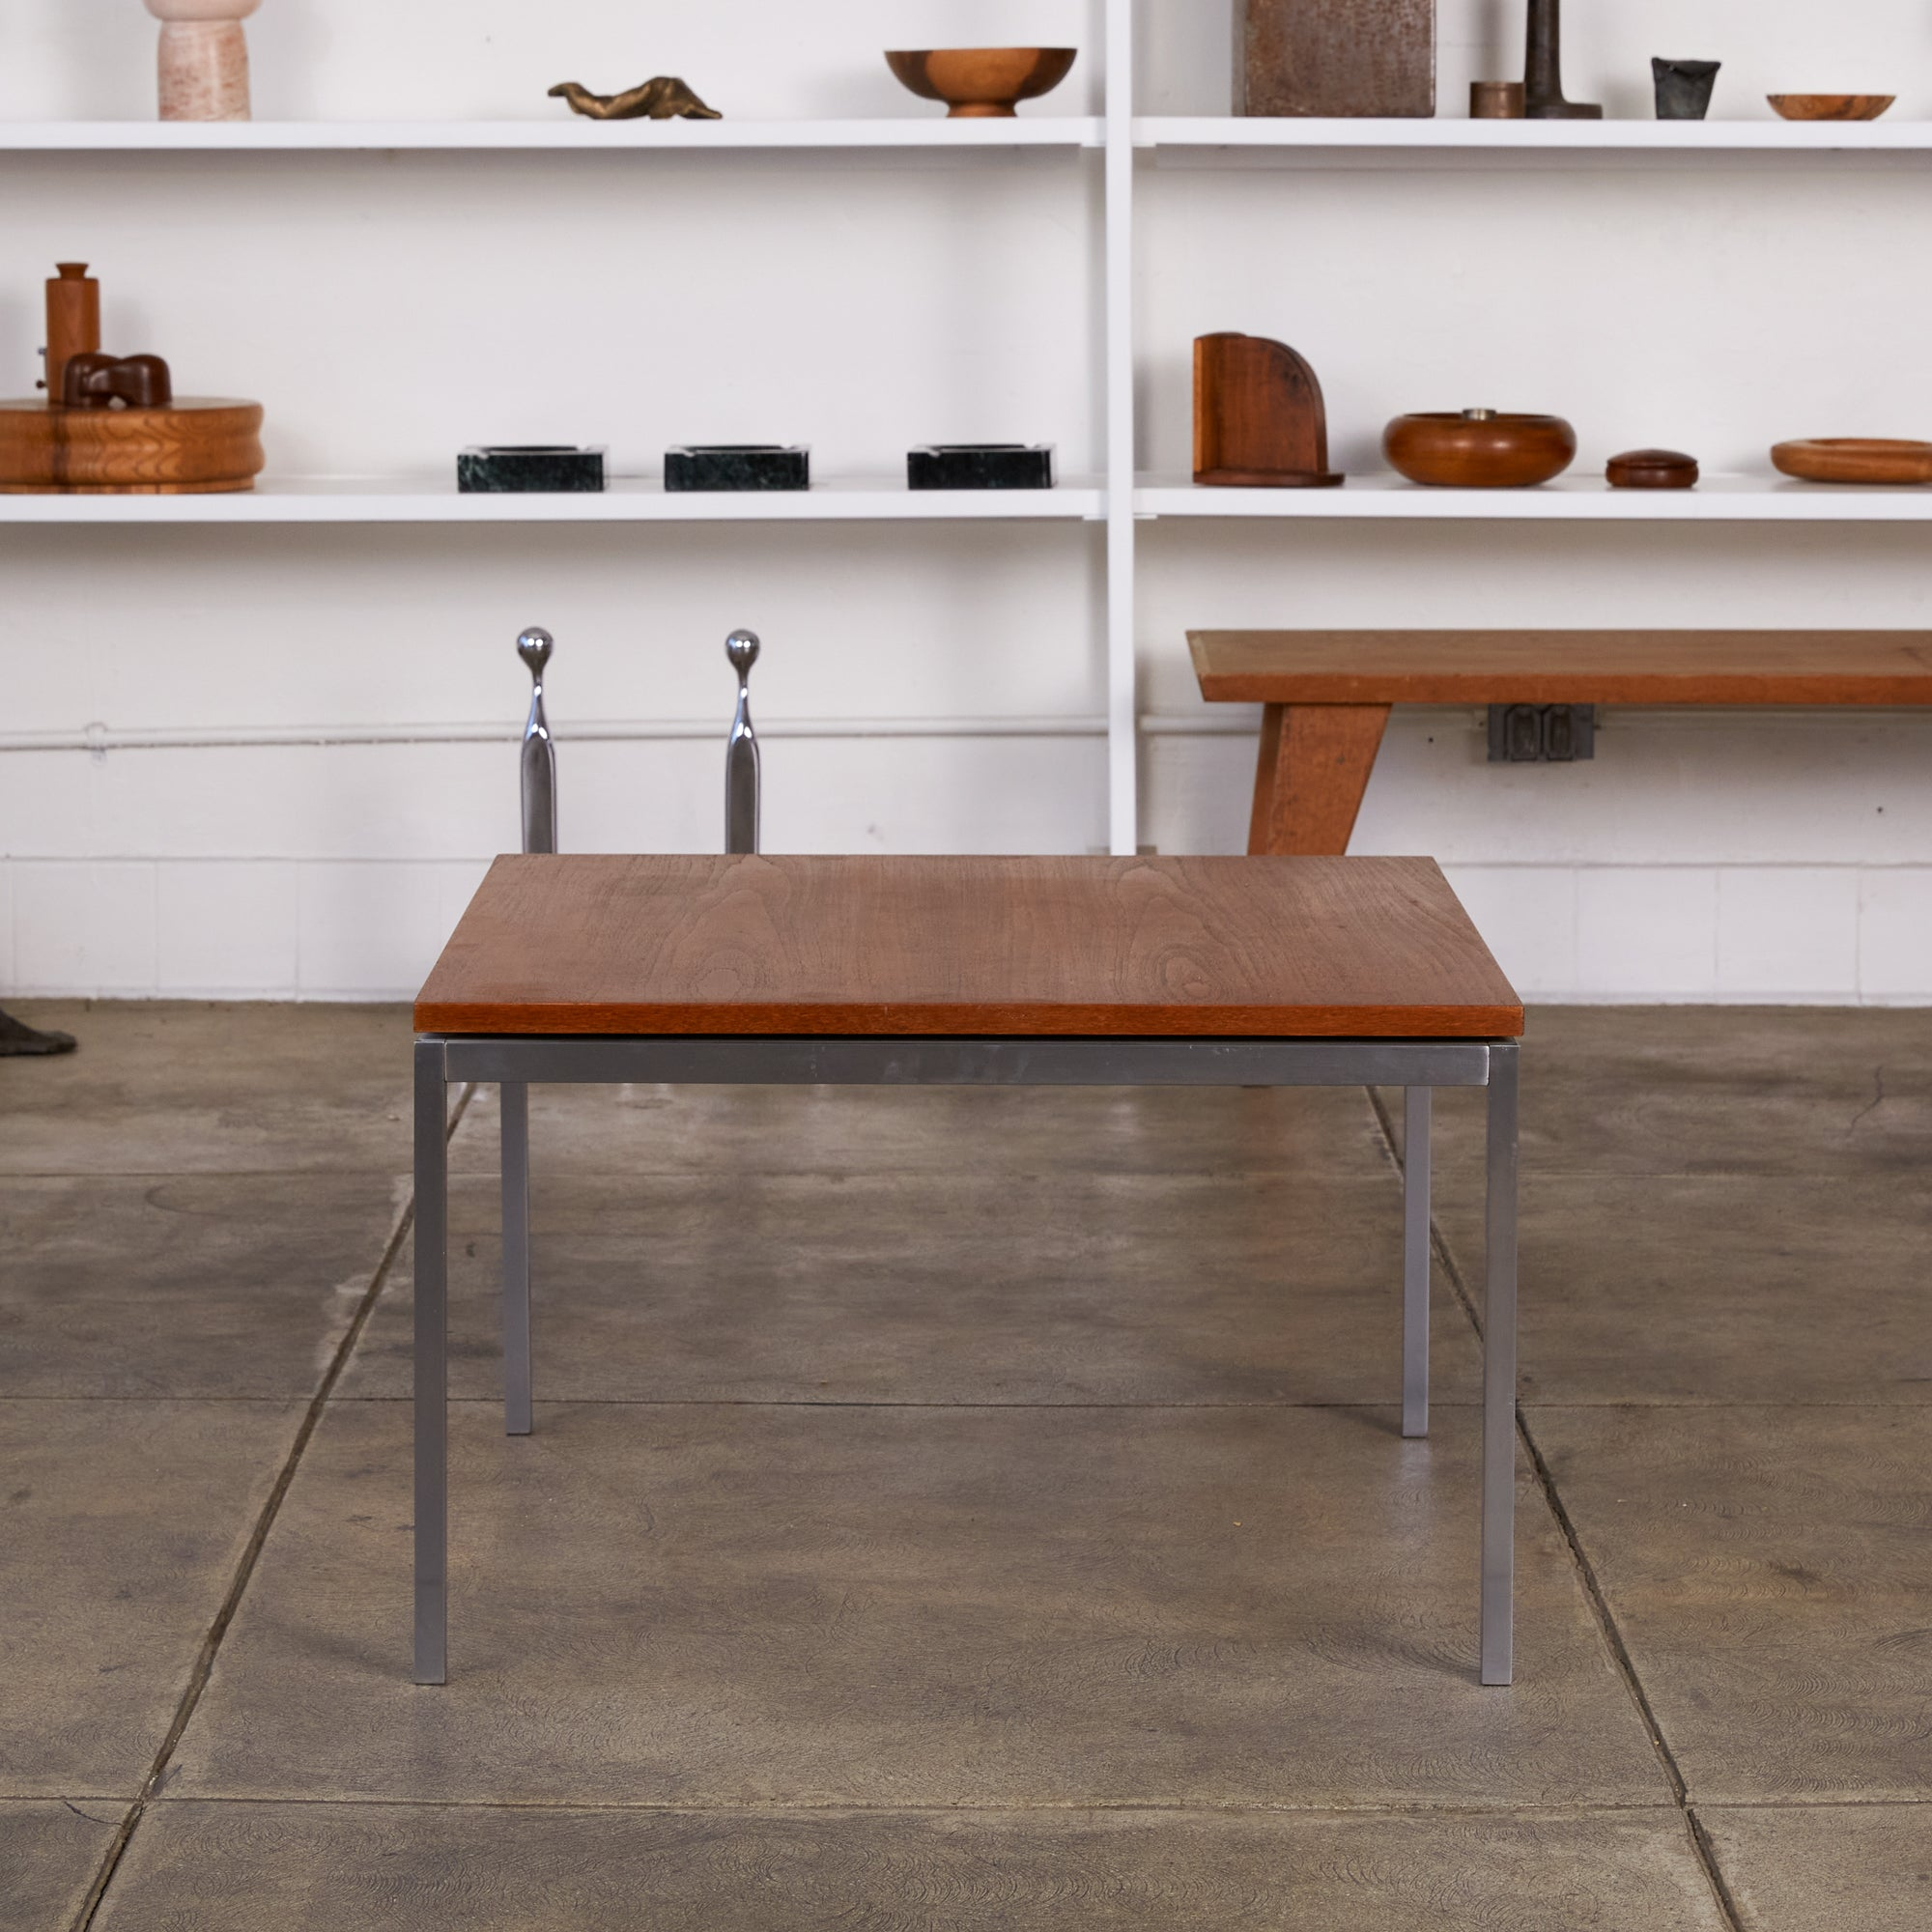 Florence Knoll Coffee Table